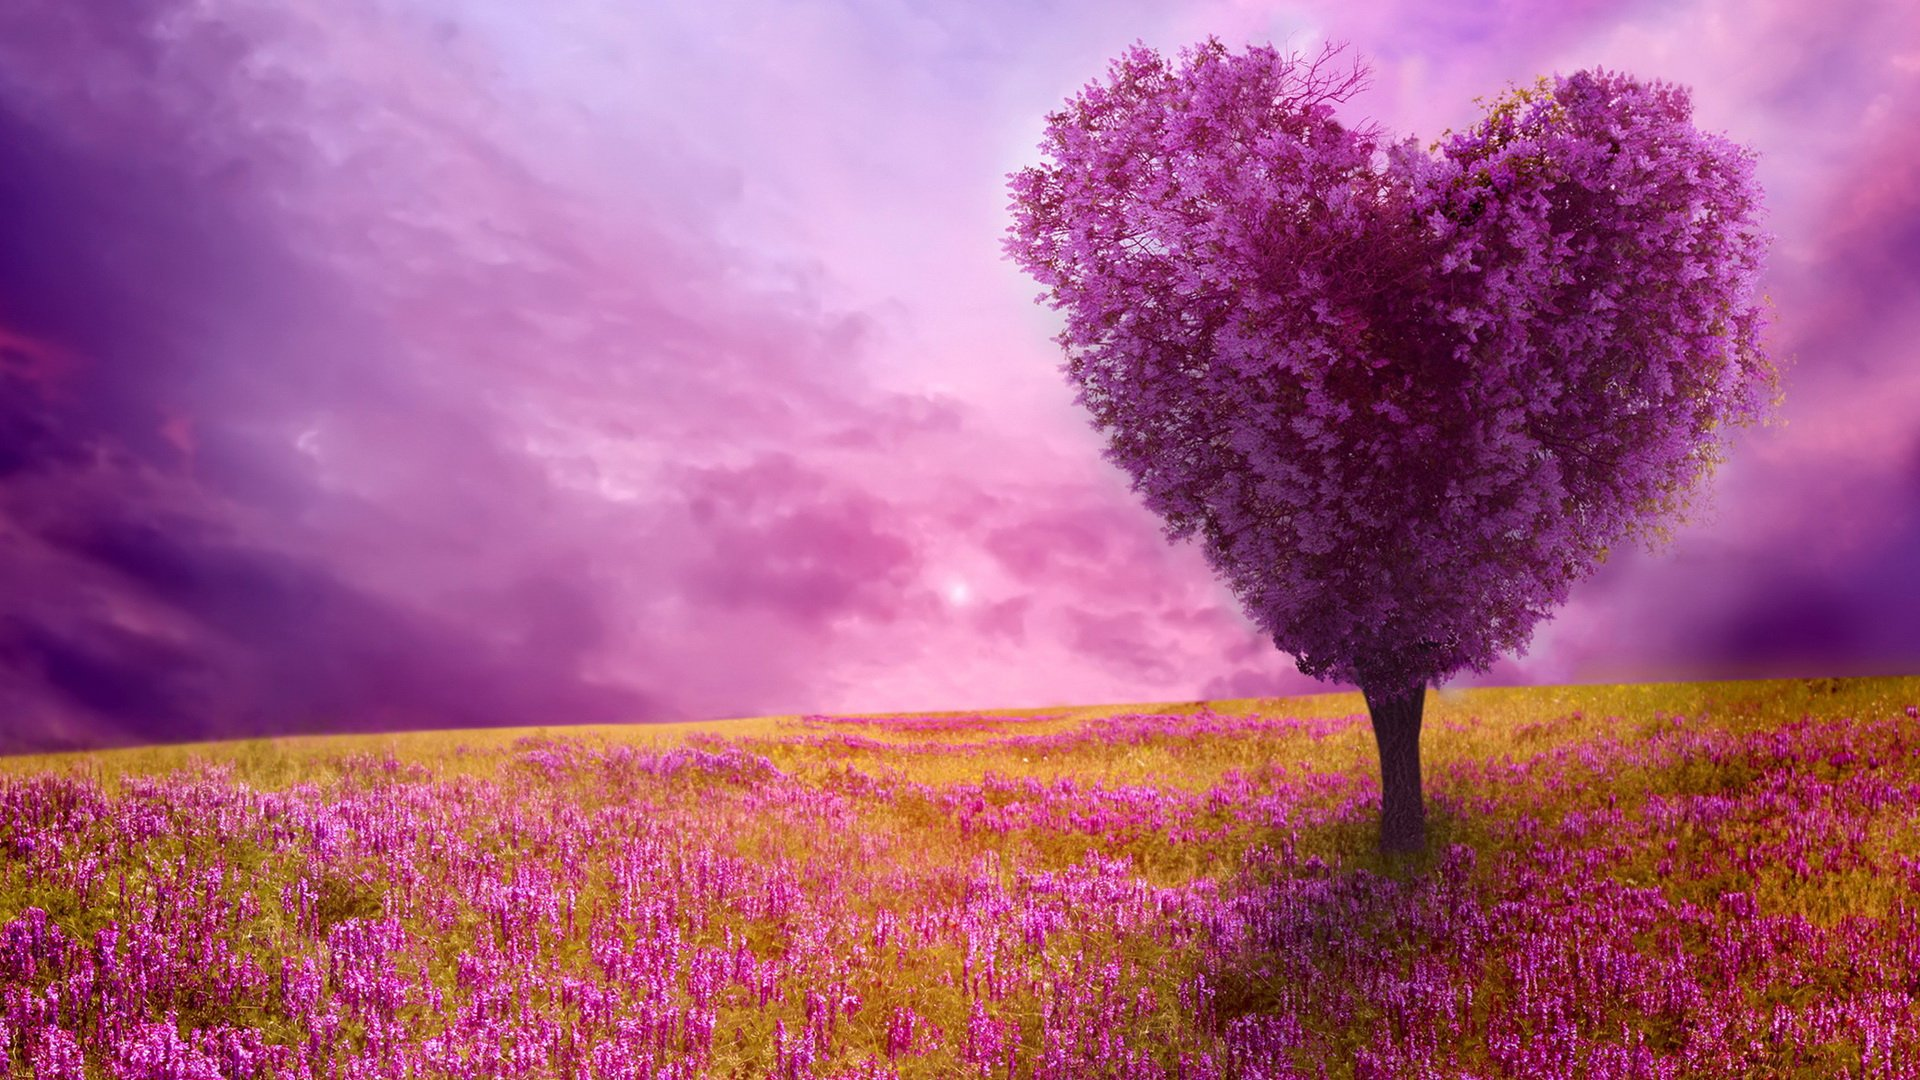 Spring nature background 1920x1080